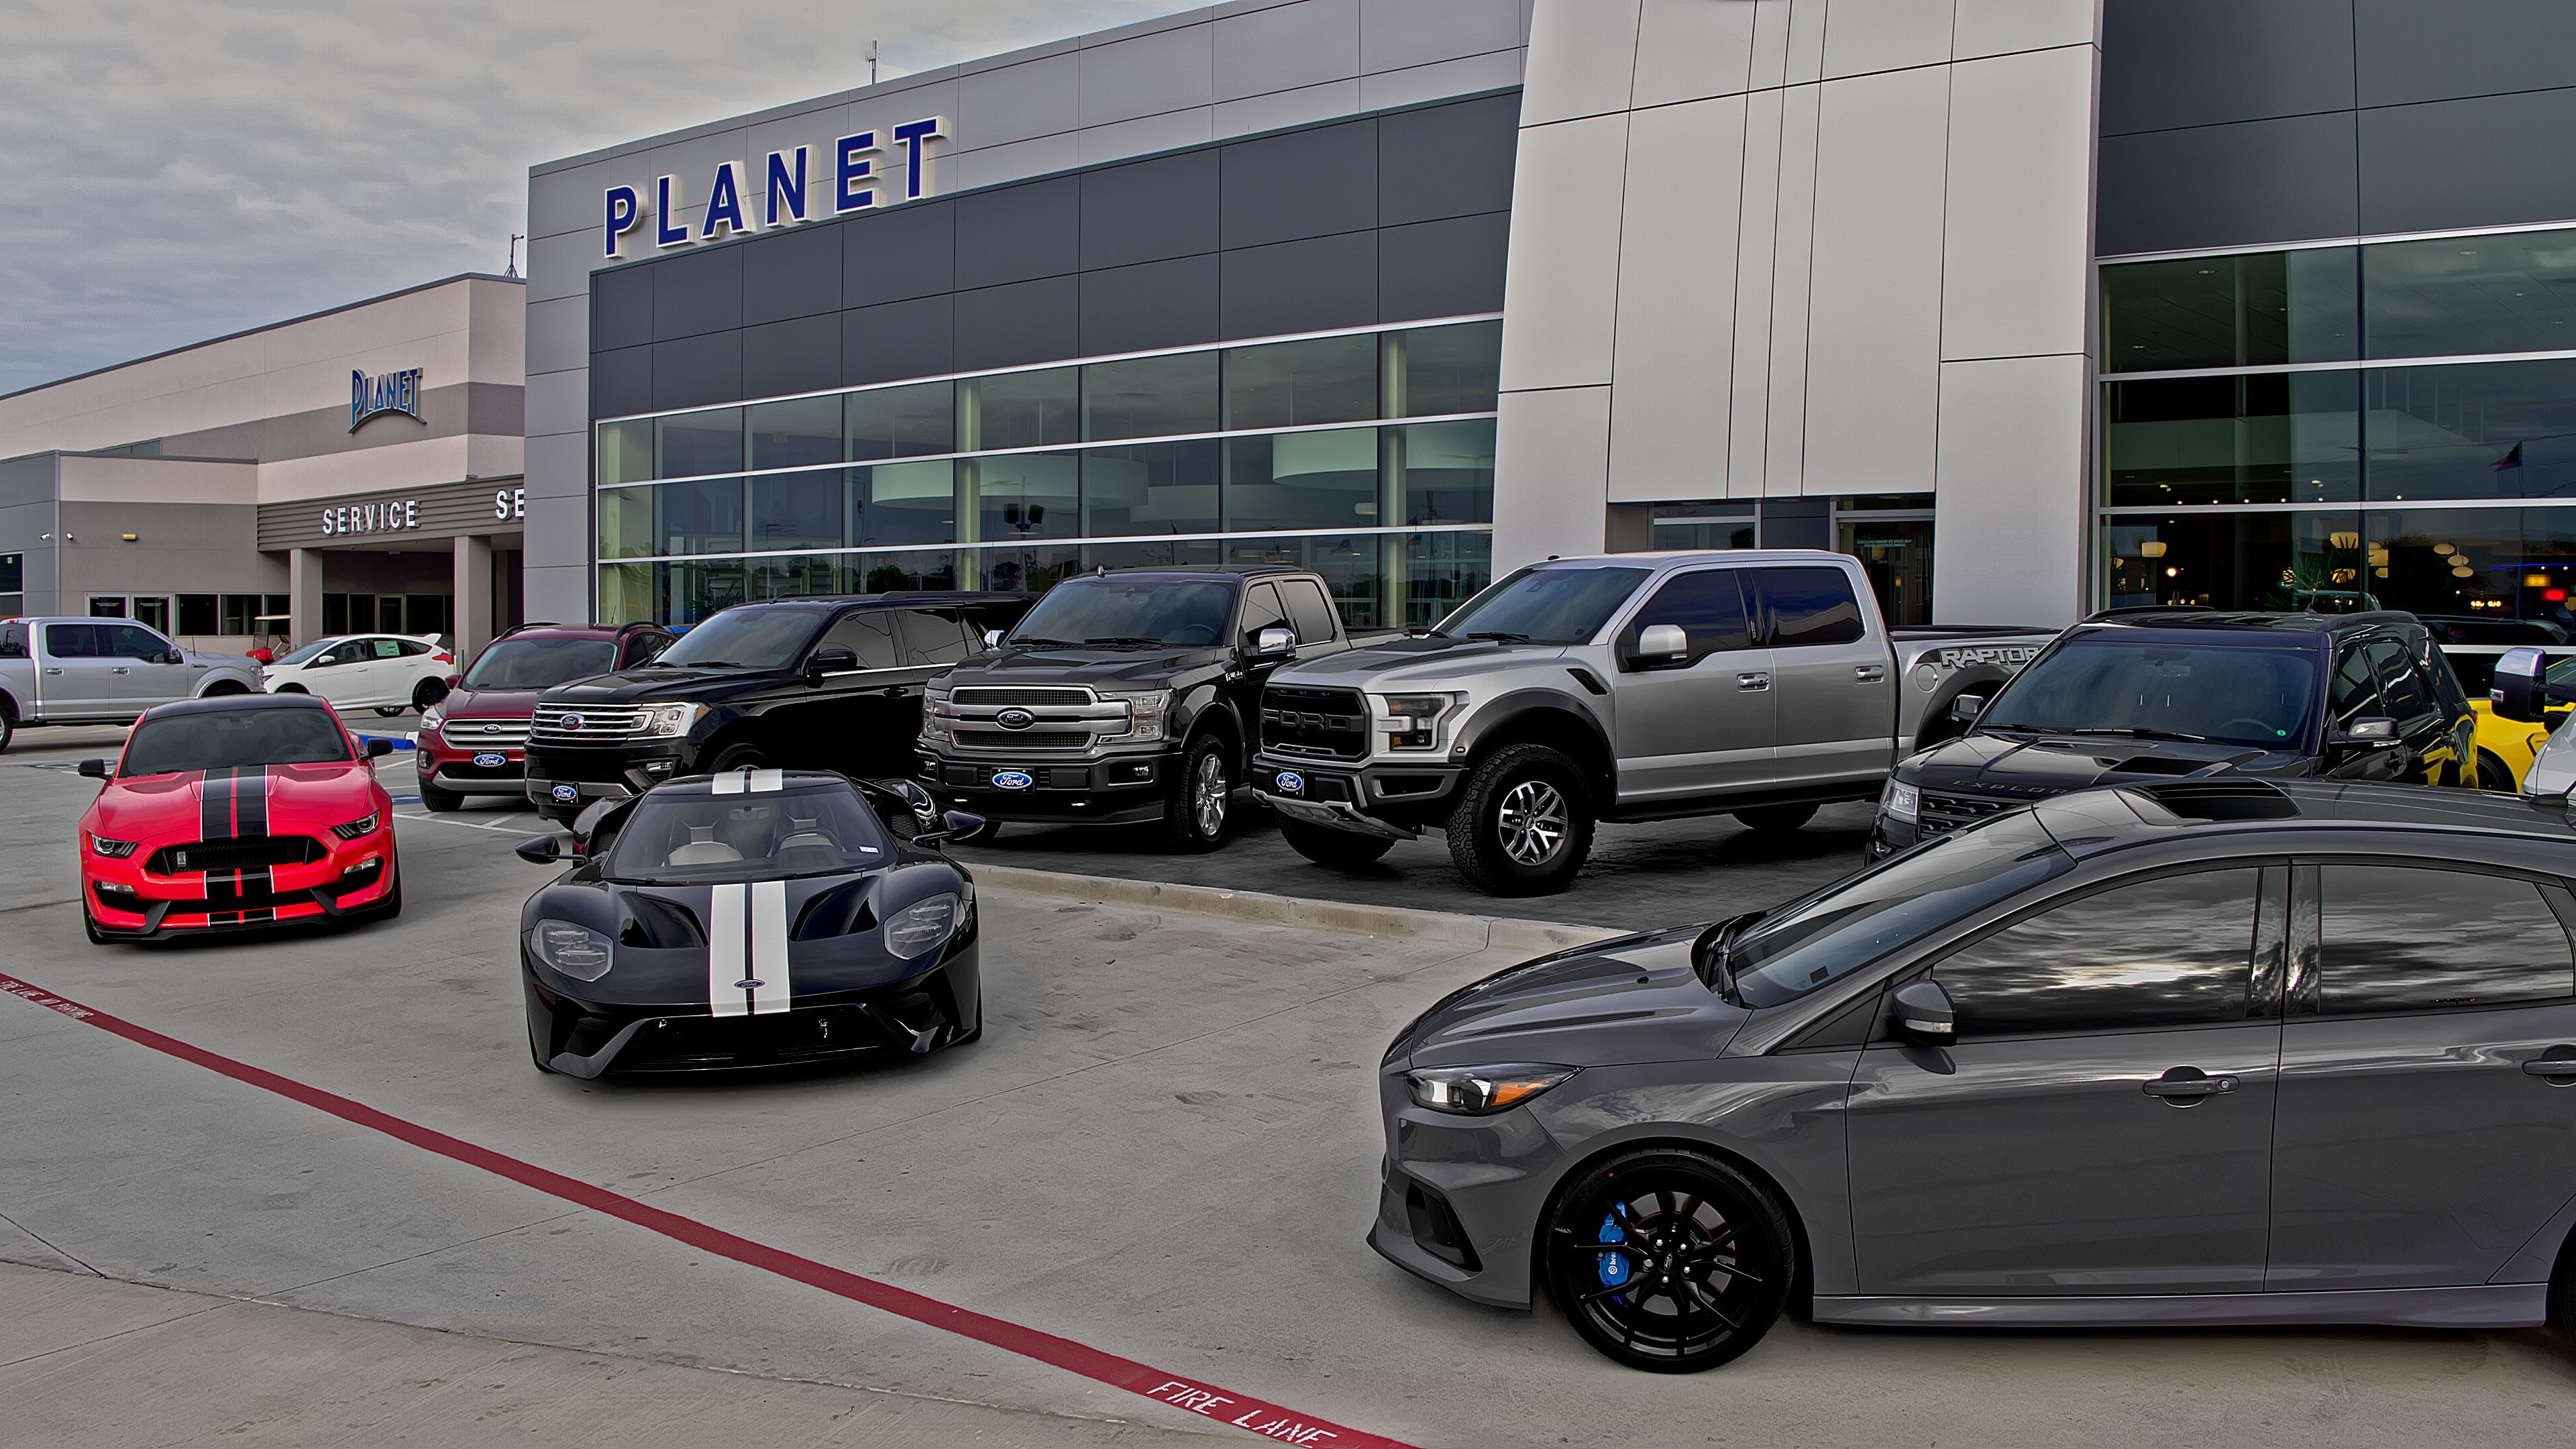 Randall Reed S Planet Ford In Spring Texas Has Been The No 1 Ford Dealer In The Greater Houston Area For Nearly 20 Years Planets Dealership Mustang Ecoboost